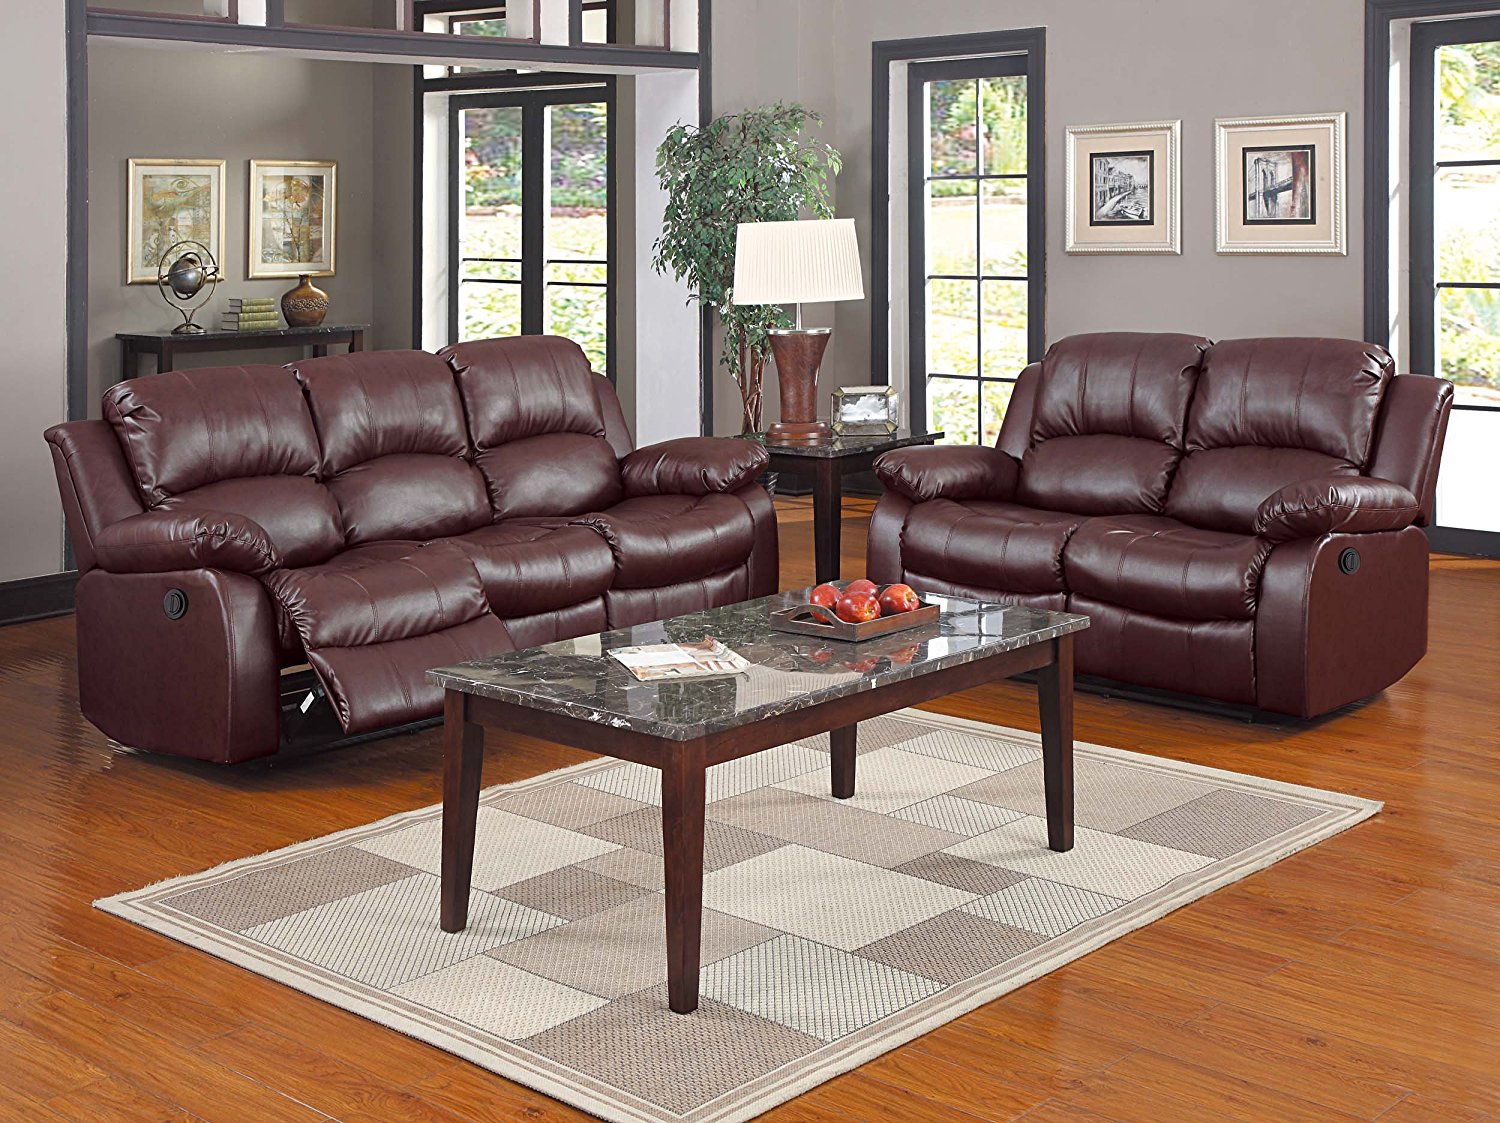 Tremendous Homelegance Cranley 2Pc Brown Power Double Reclining Sofa Loveseat Set Bralicious Painted Fabric Chair Ideas Braliciousco